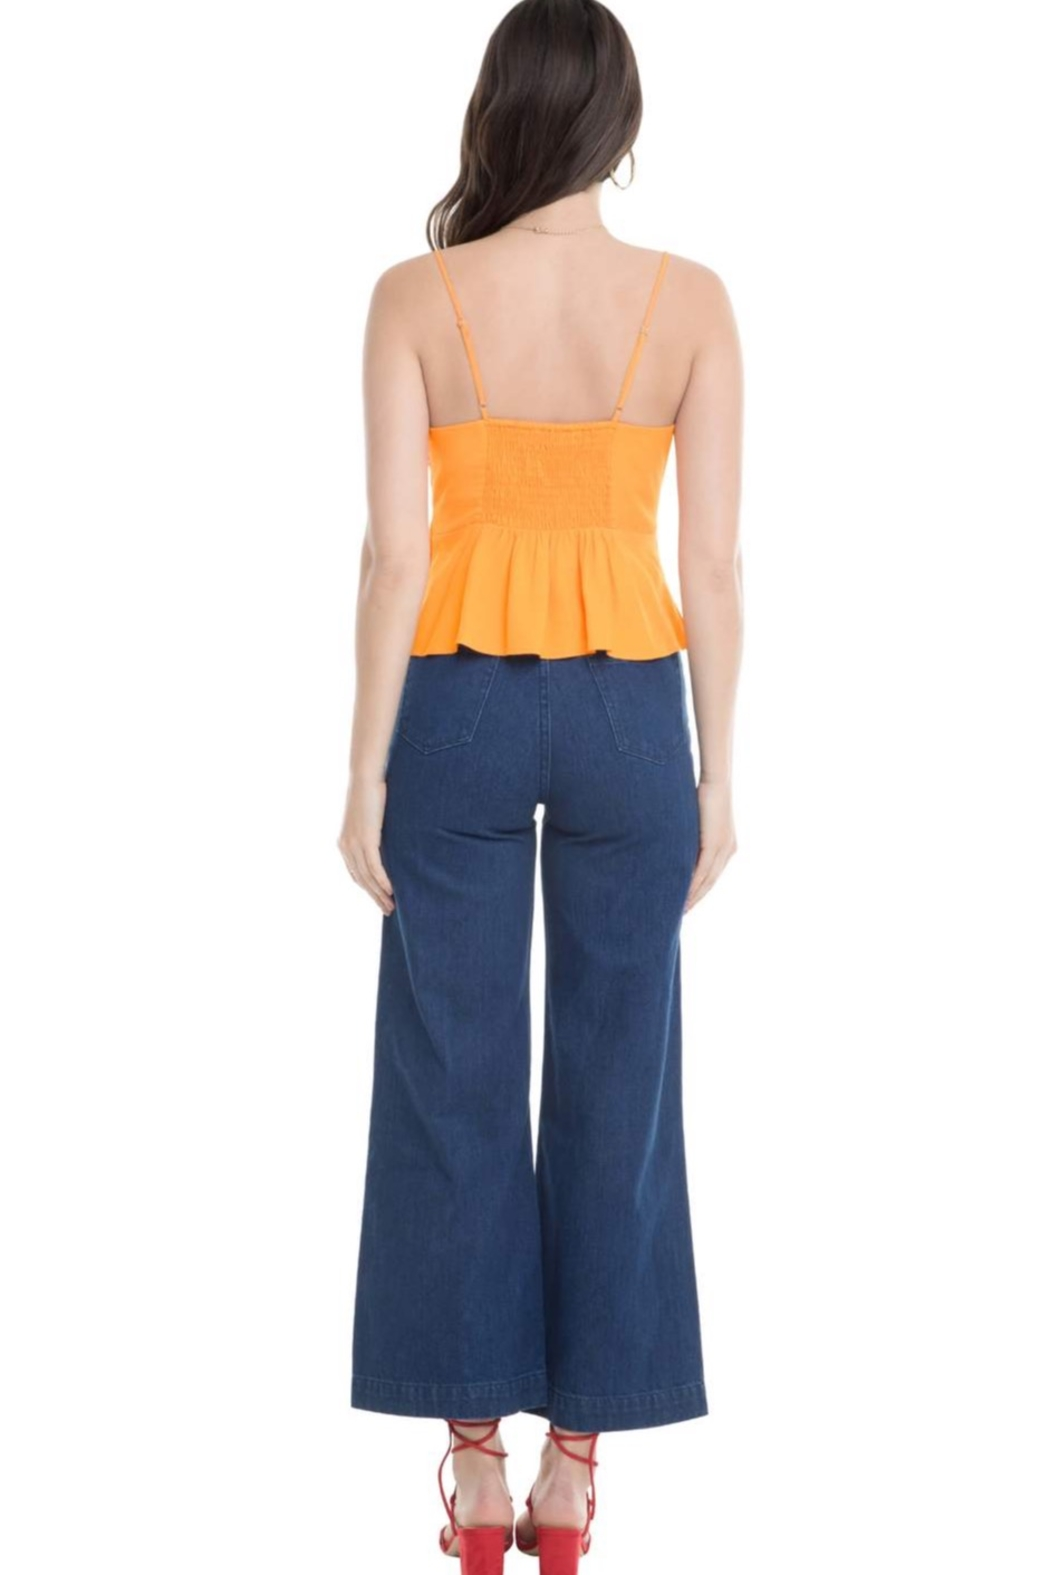 Aster Judi Bow Top - Side Cropped Image